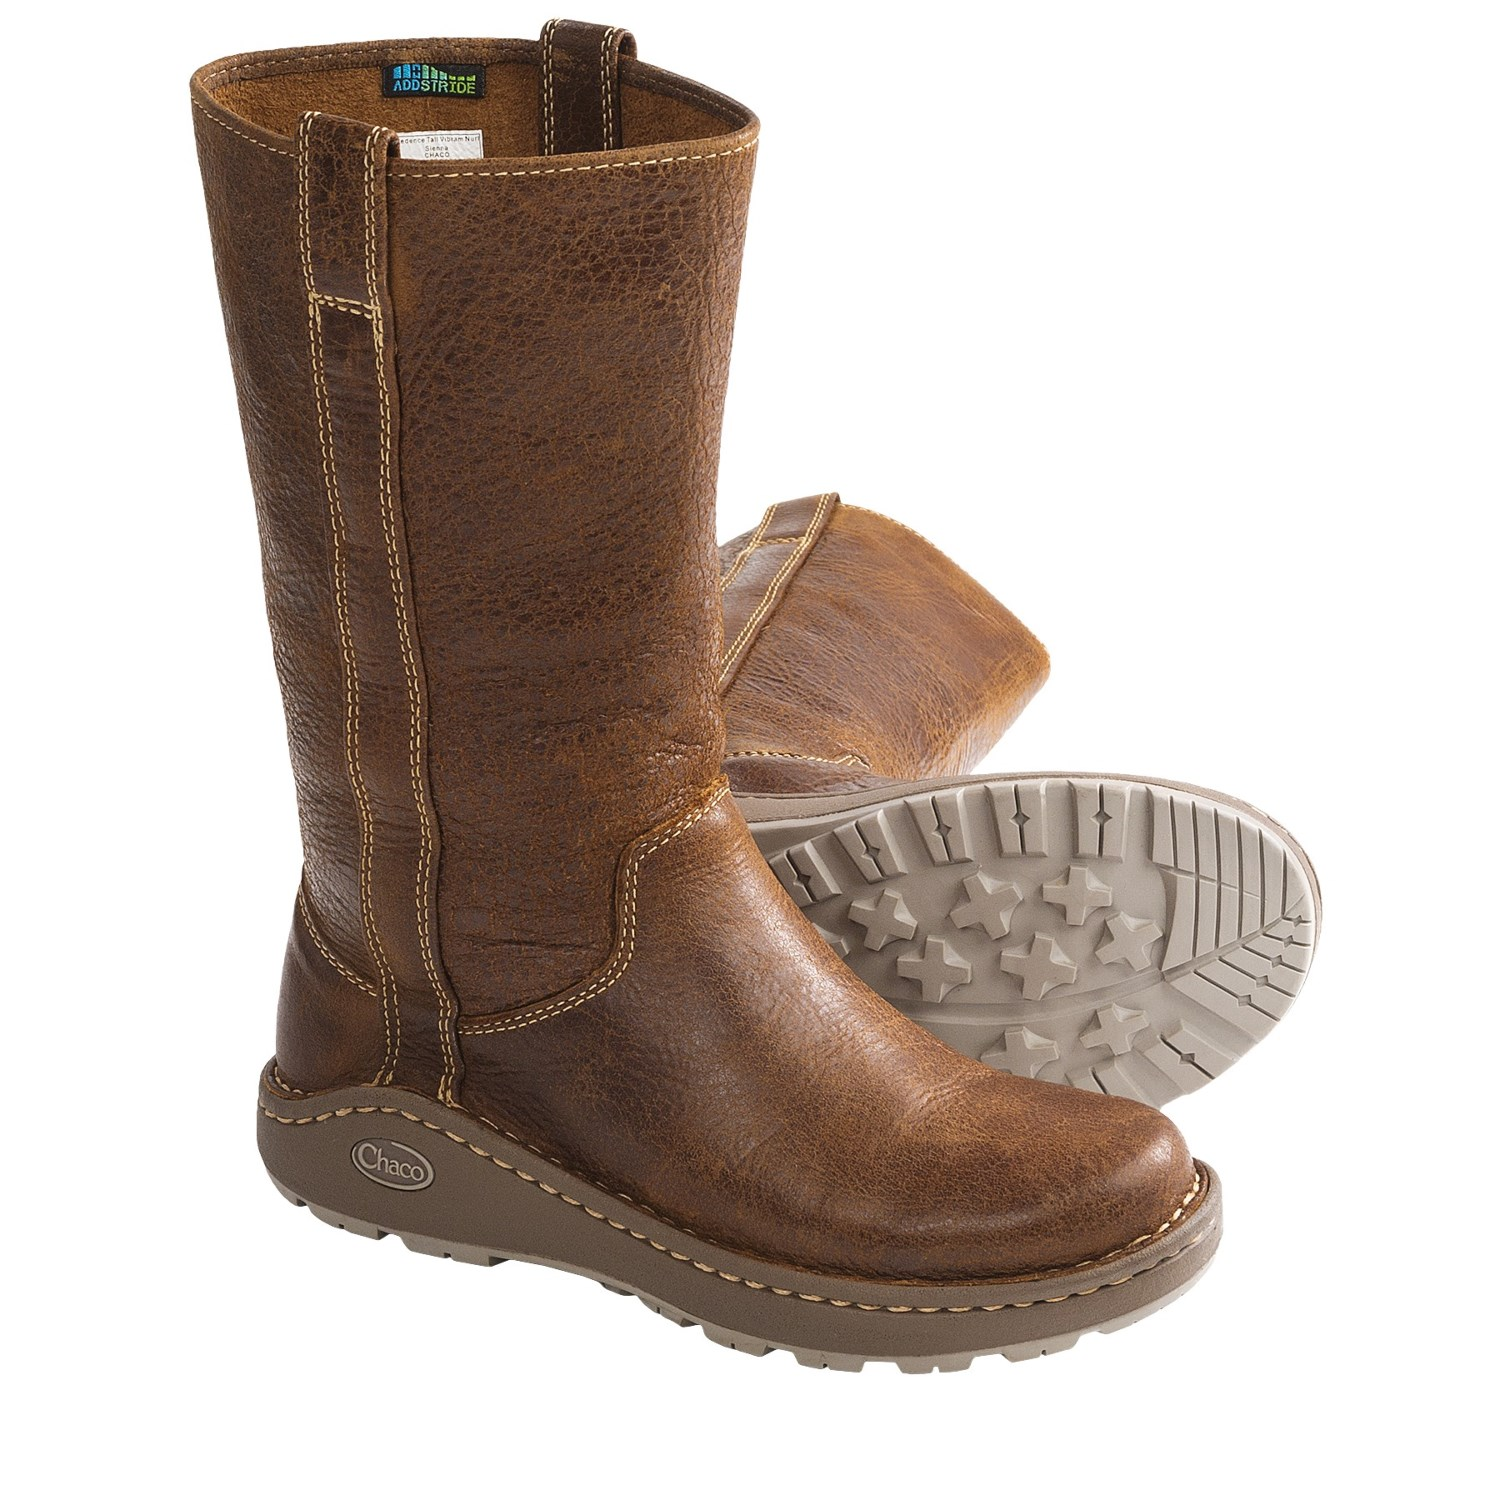 Riding boots for girls & boys from top brands Kids riding boots for English or Western riding. Riding boots for girls, from zip or lace paddock boots for everyday riding to tall boots for the show ring, kids will be stylishly comfortable in brands like Ariat, Dublin or Ovation.